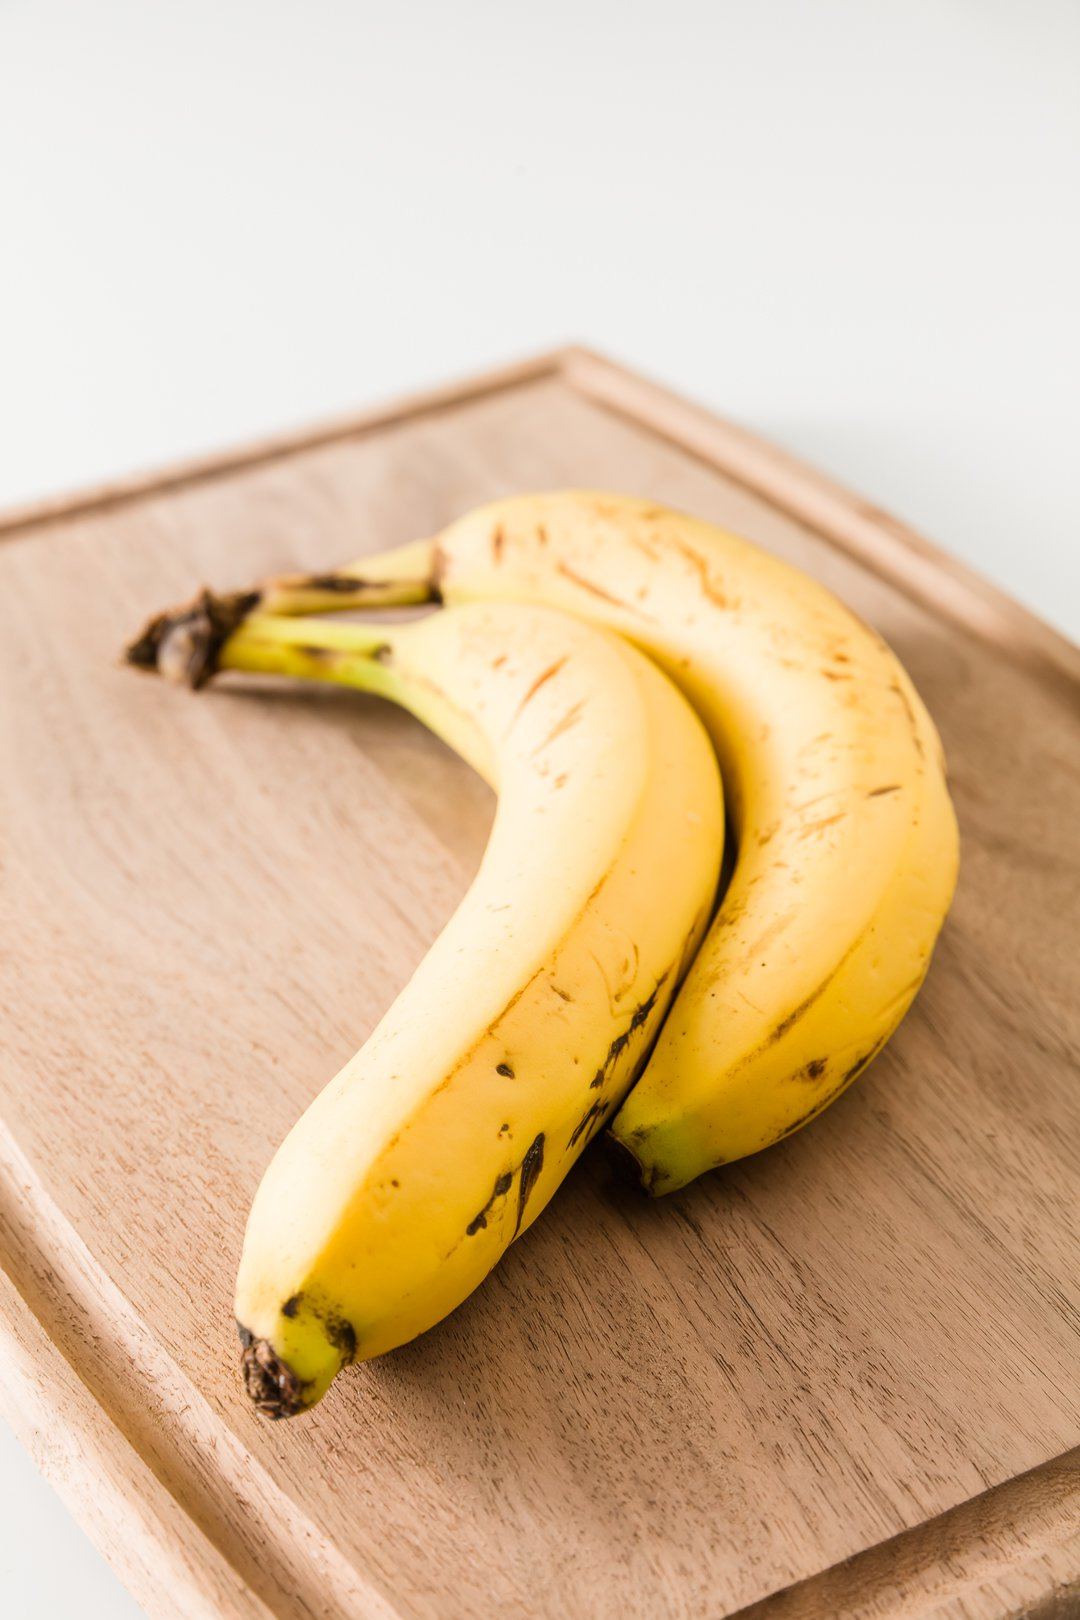 Two yellow bananas with just a few brown spots on a cutting board